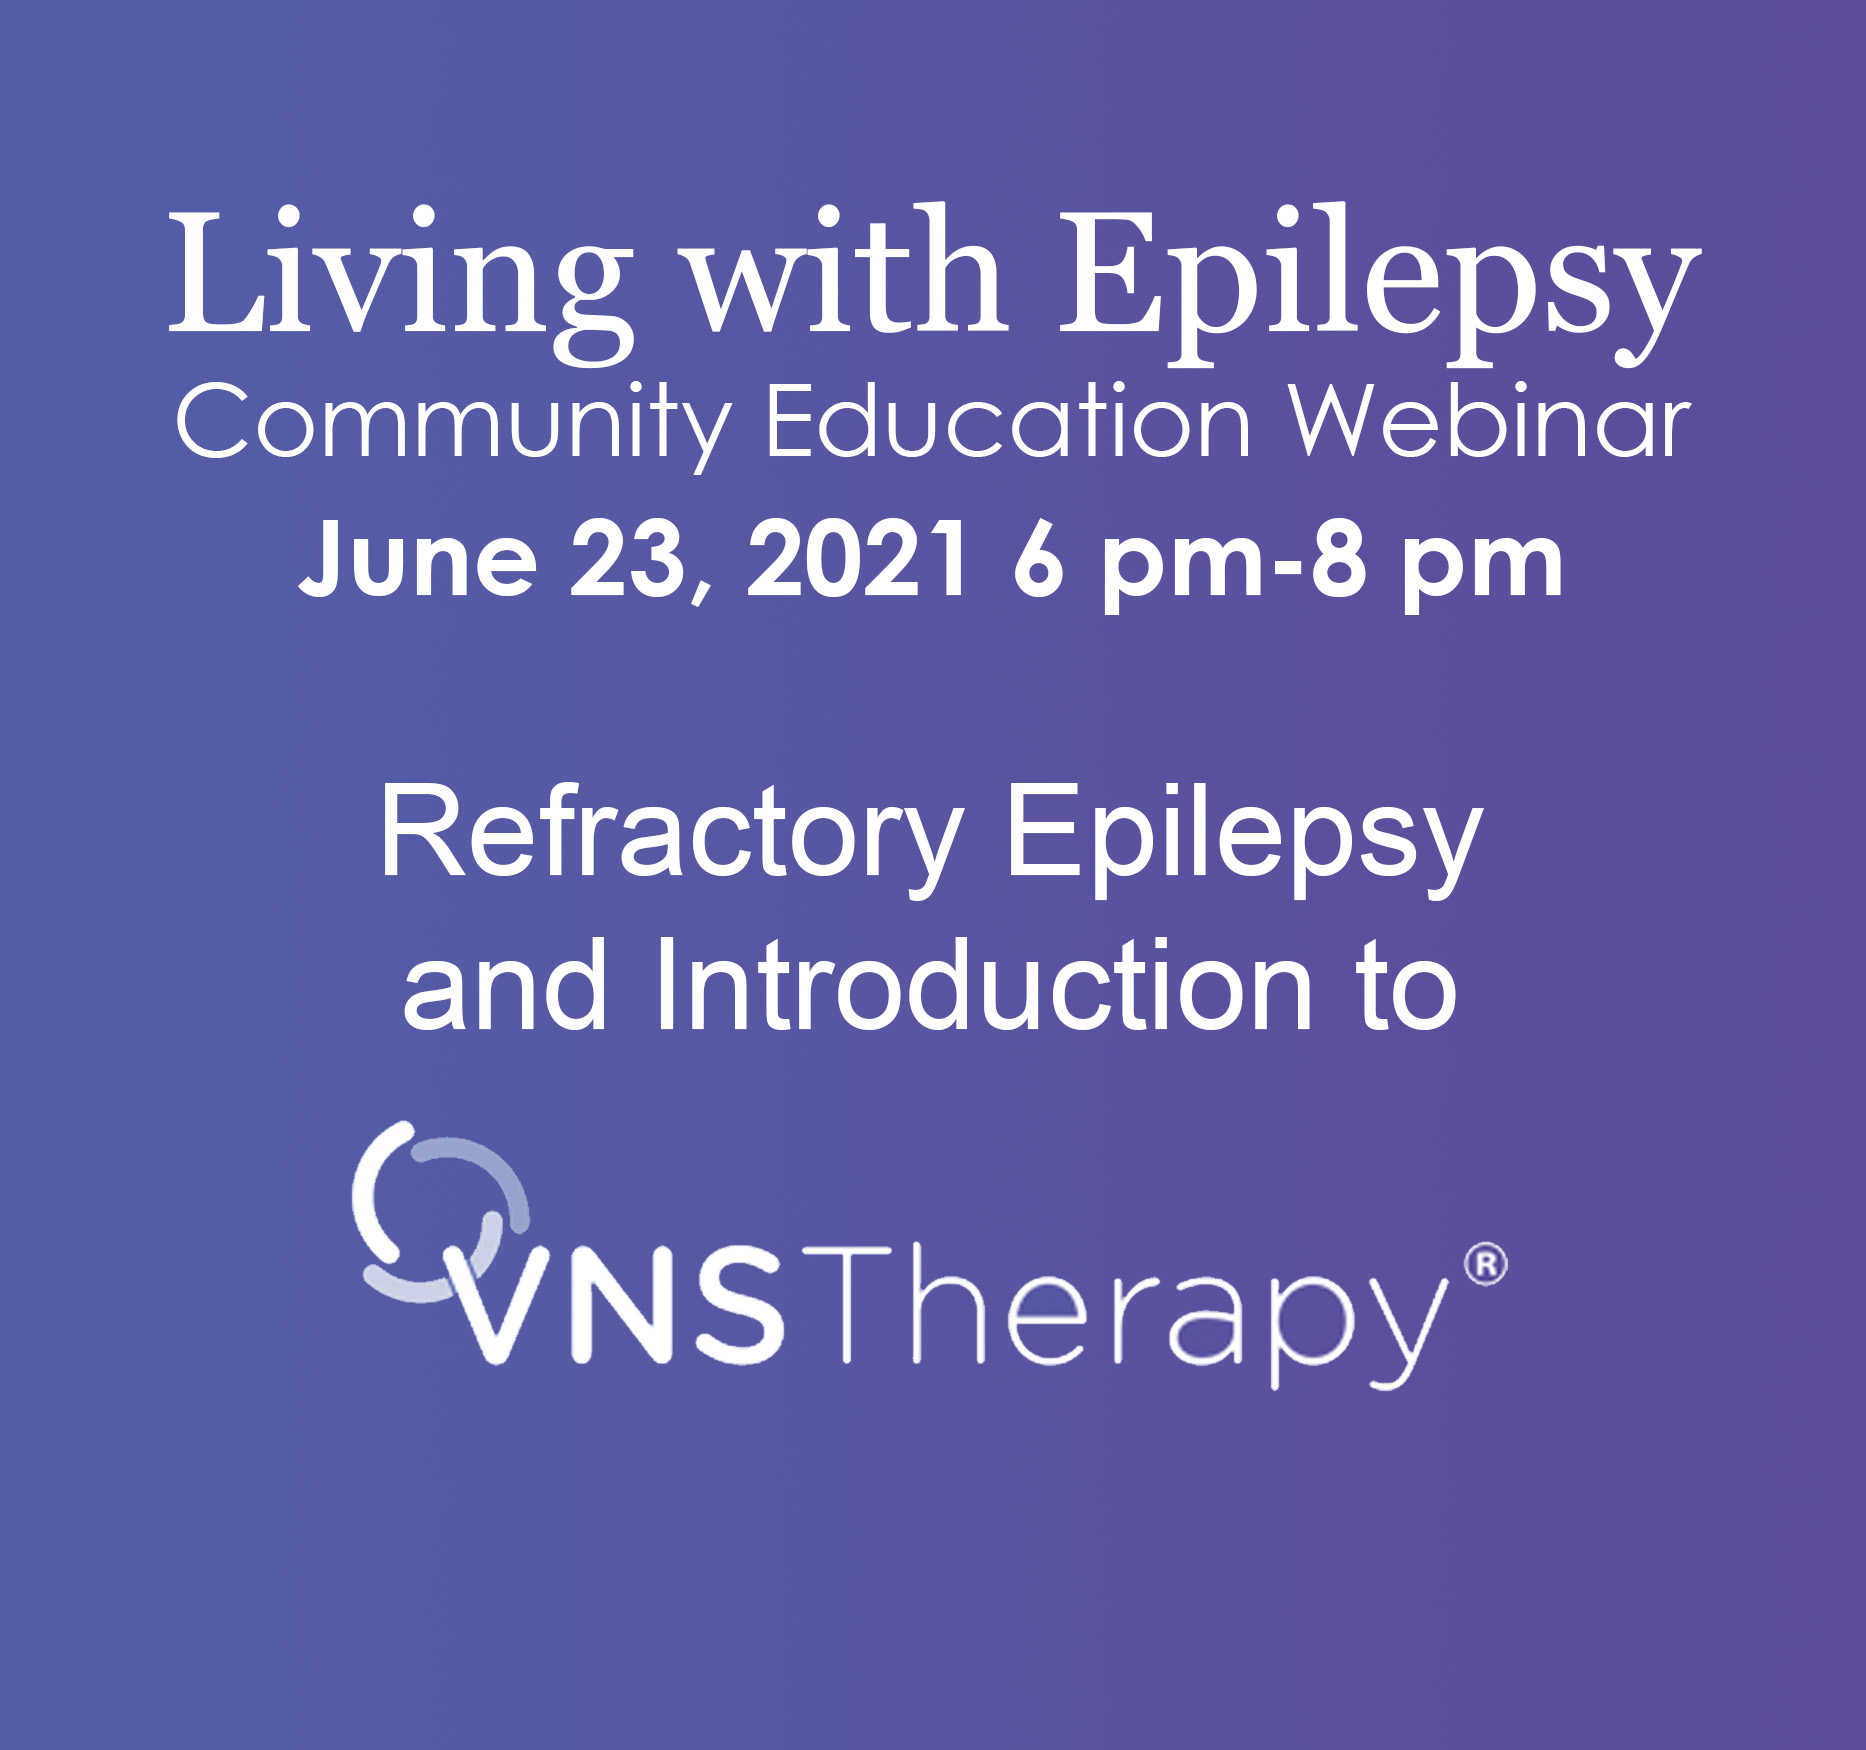 """Living with Epilepsy Community Education Webinar – """"Refractory Epilepsy and Introduction to VNS Therapy"""""""